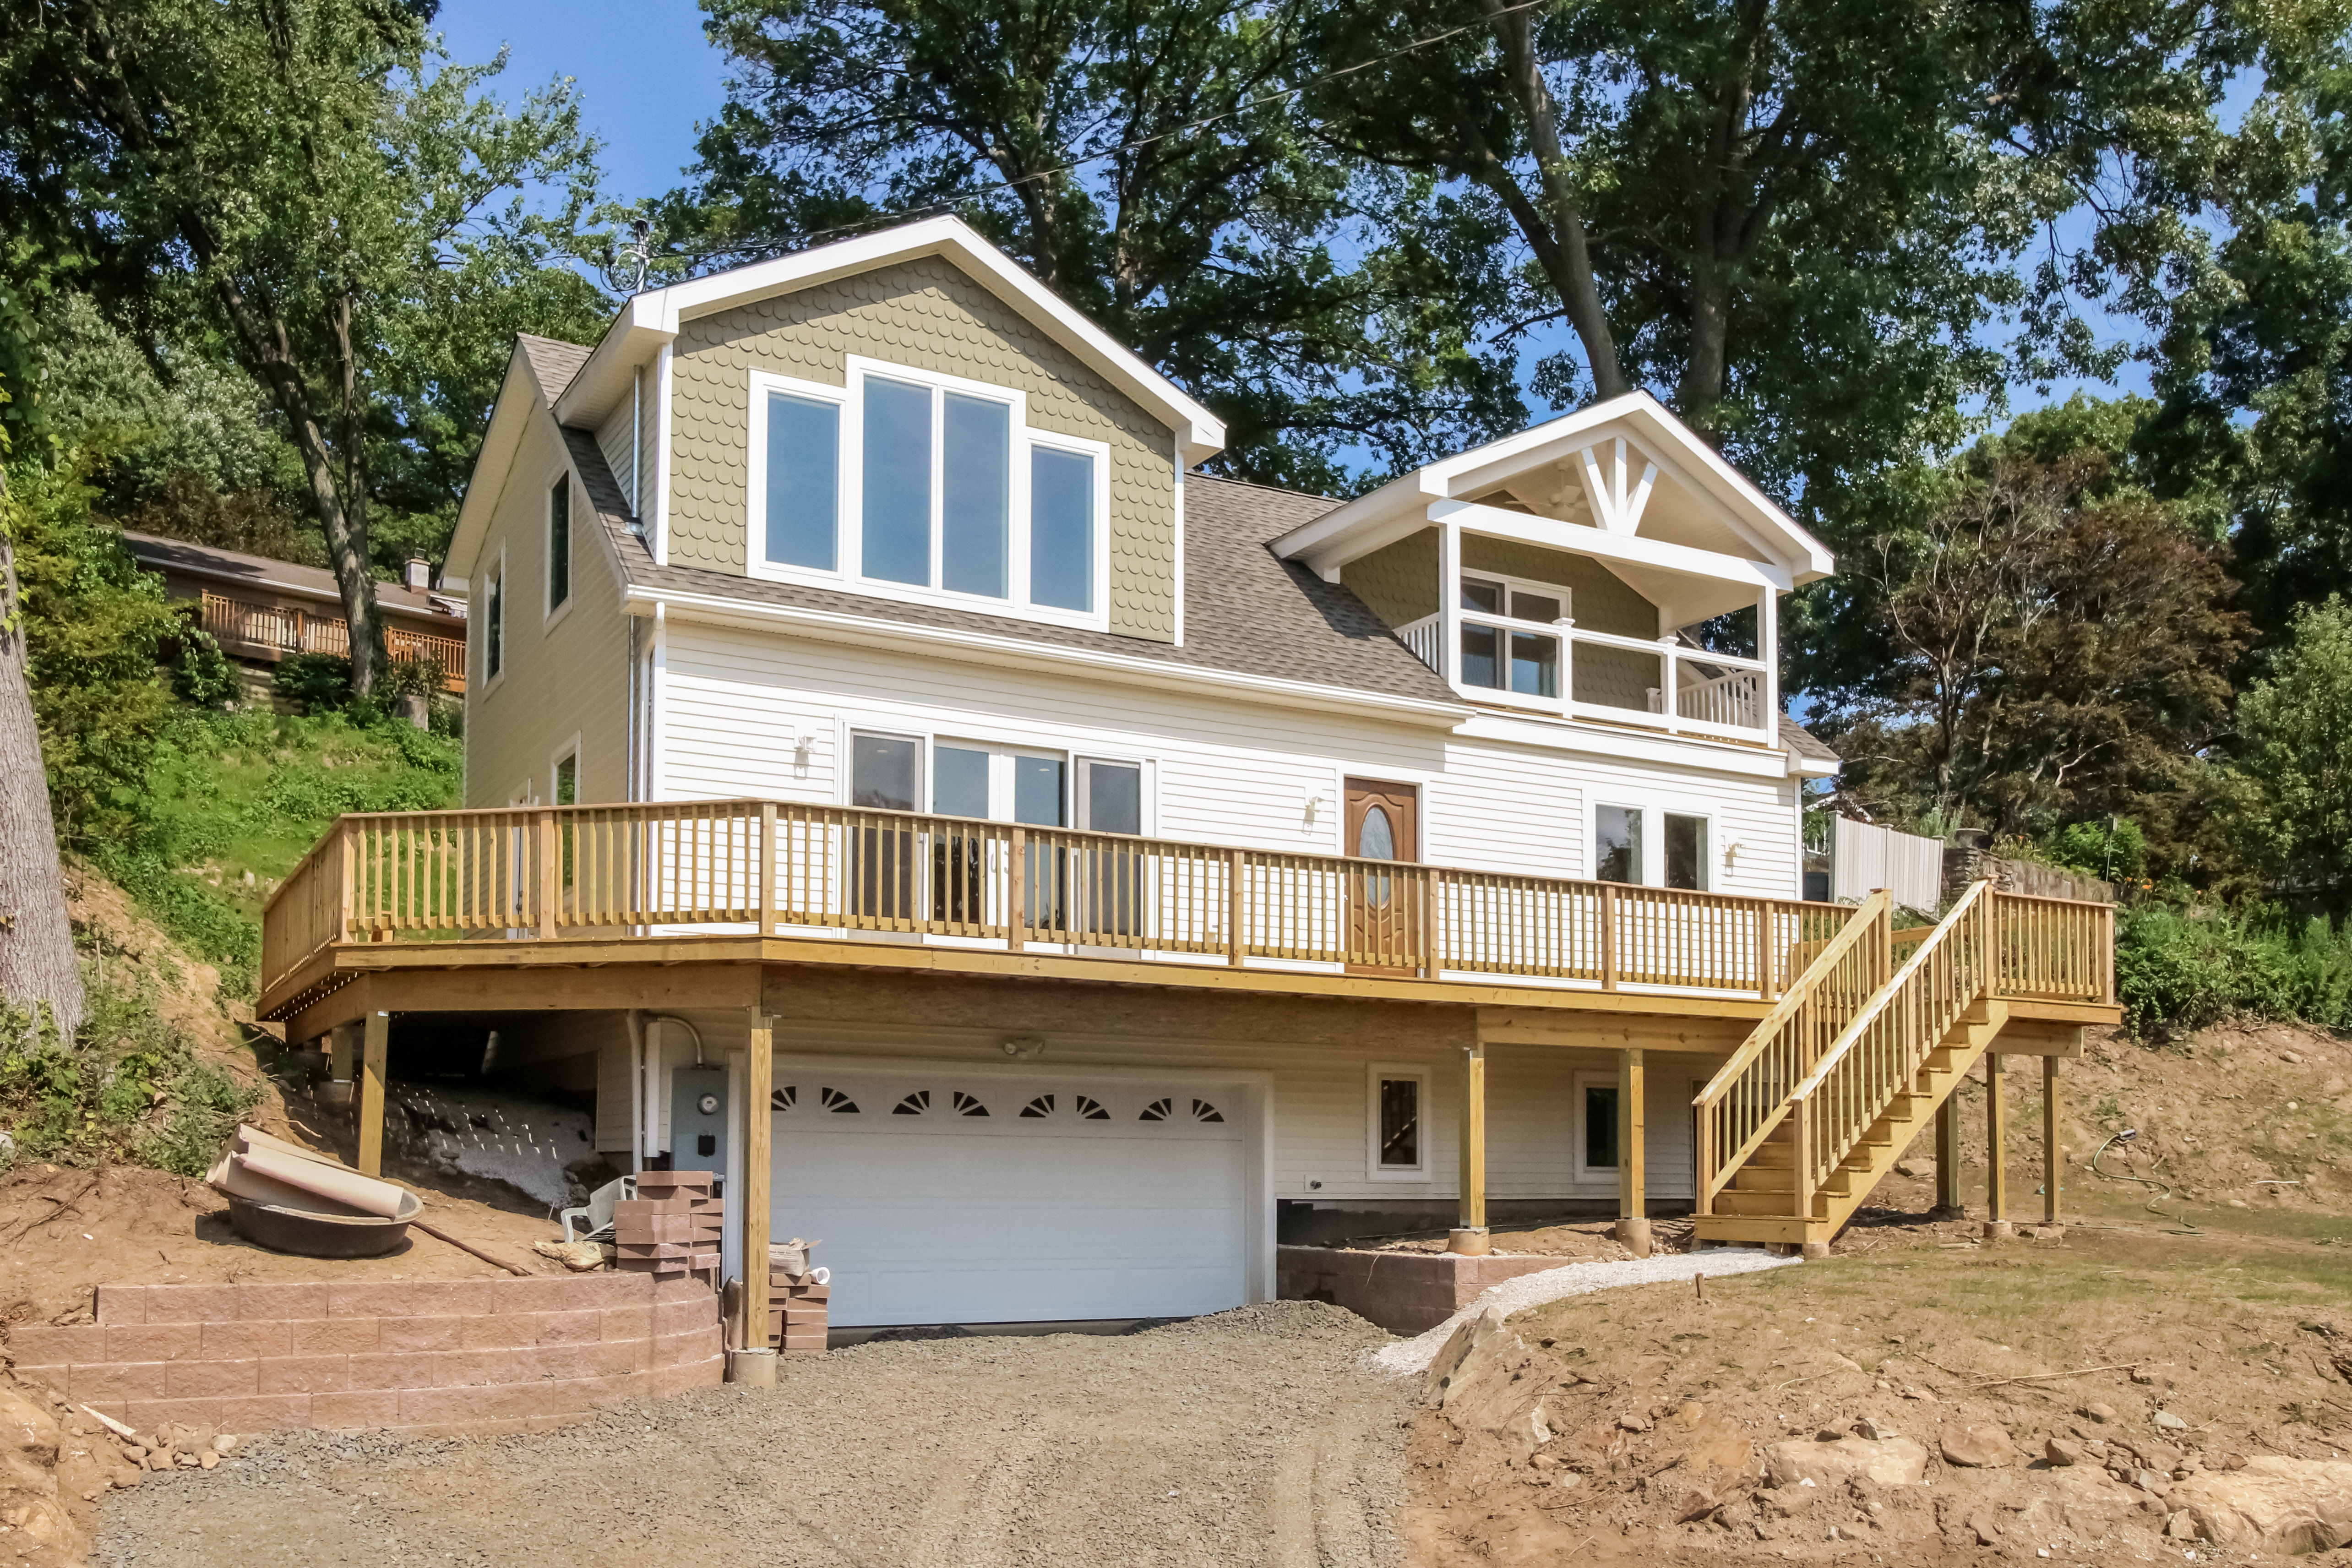 Single Family Home for Sale at Exceptional New Construction 43 Twilight Lane Brookfield, Connecticut, 06804 United States